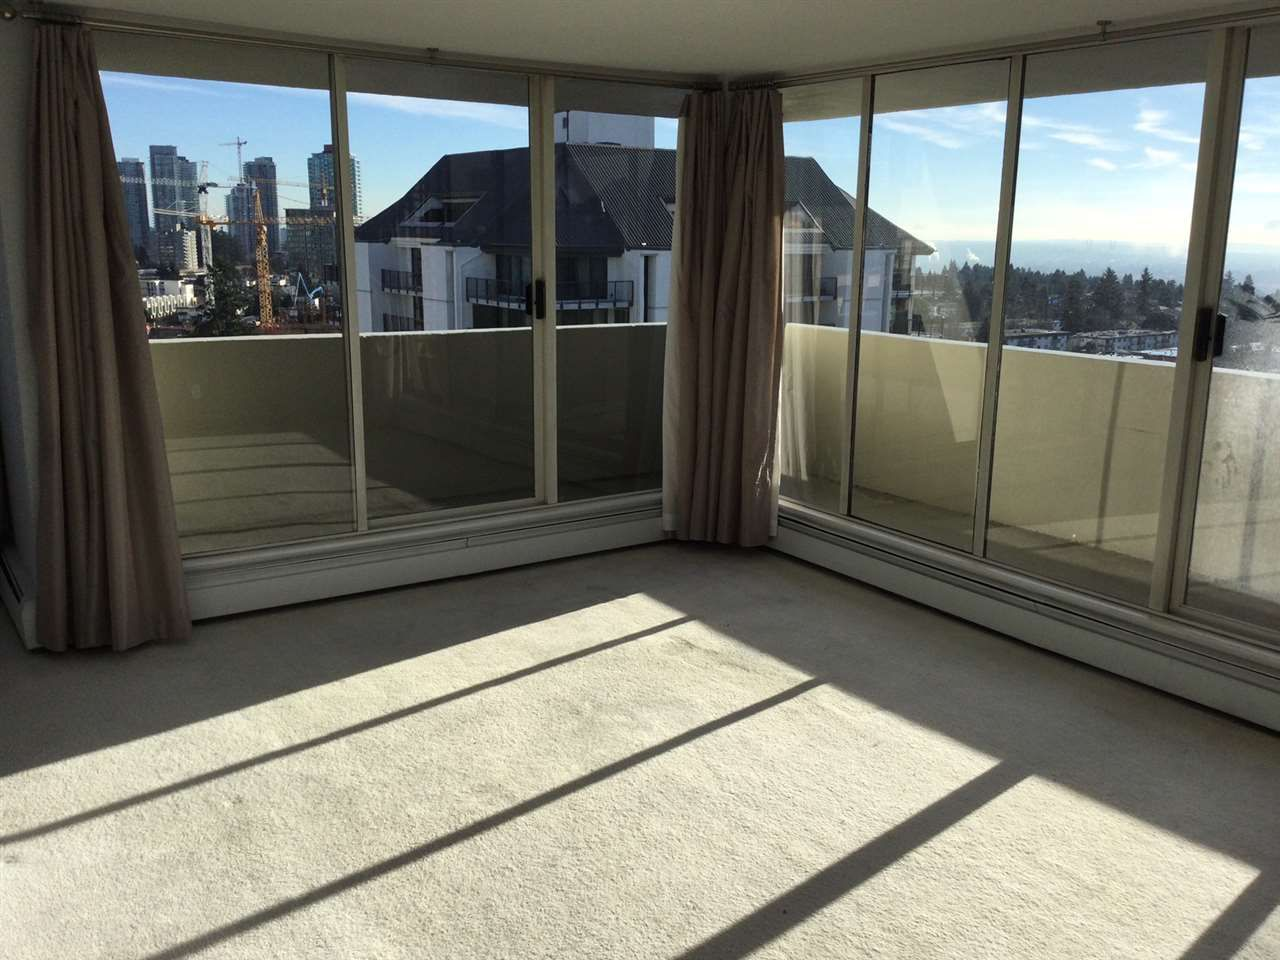 """Photo 7: Photos: 1802 4300 MAYBERRY Street in Burnaby: Metrotown Condo for sale in """"Times Square"""" (Burnaby South)  : MLS®# R2529822"""